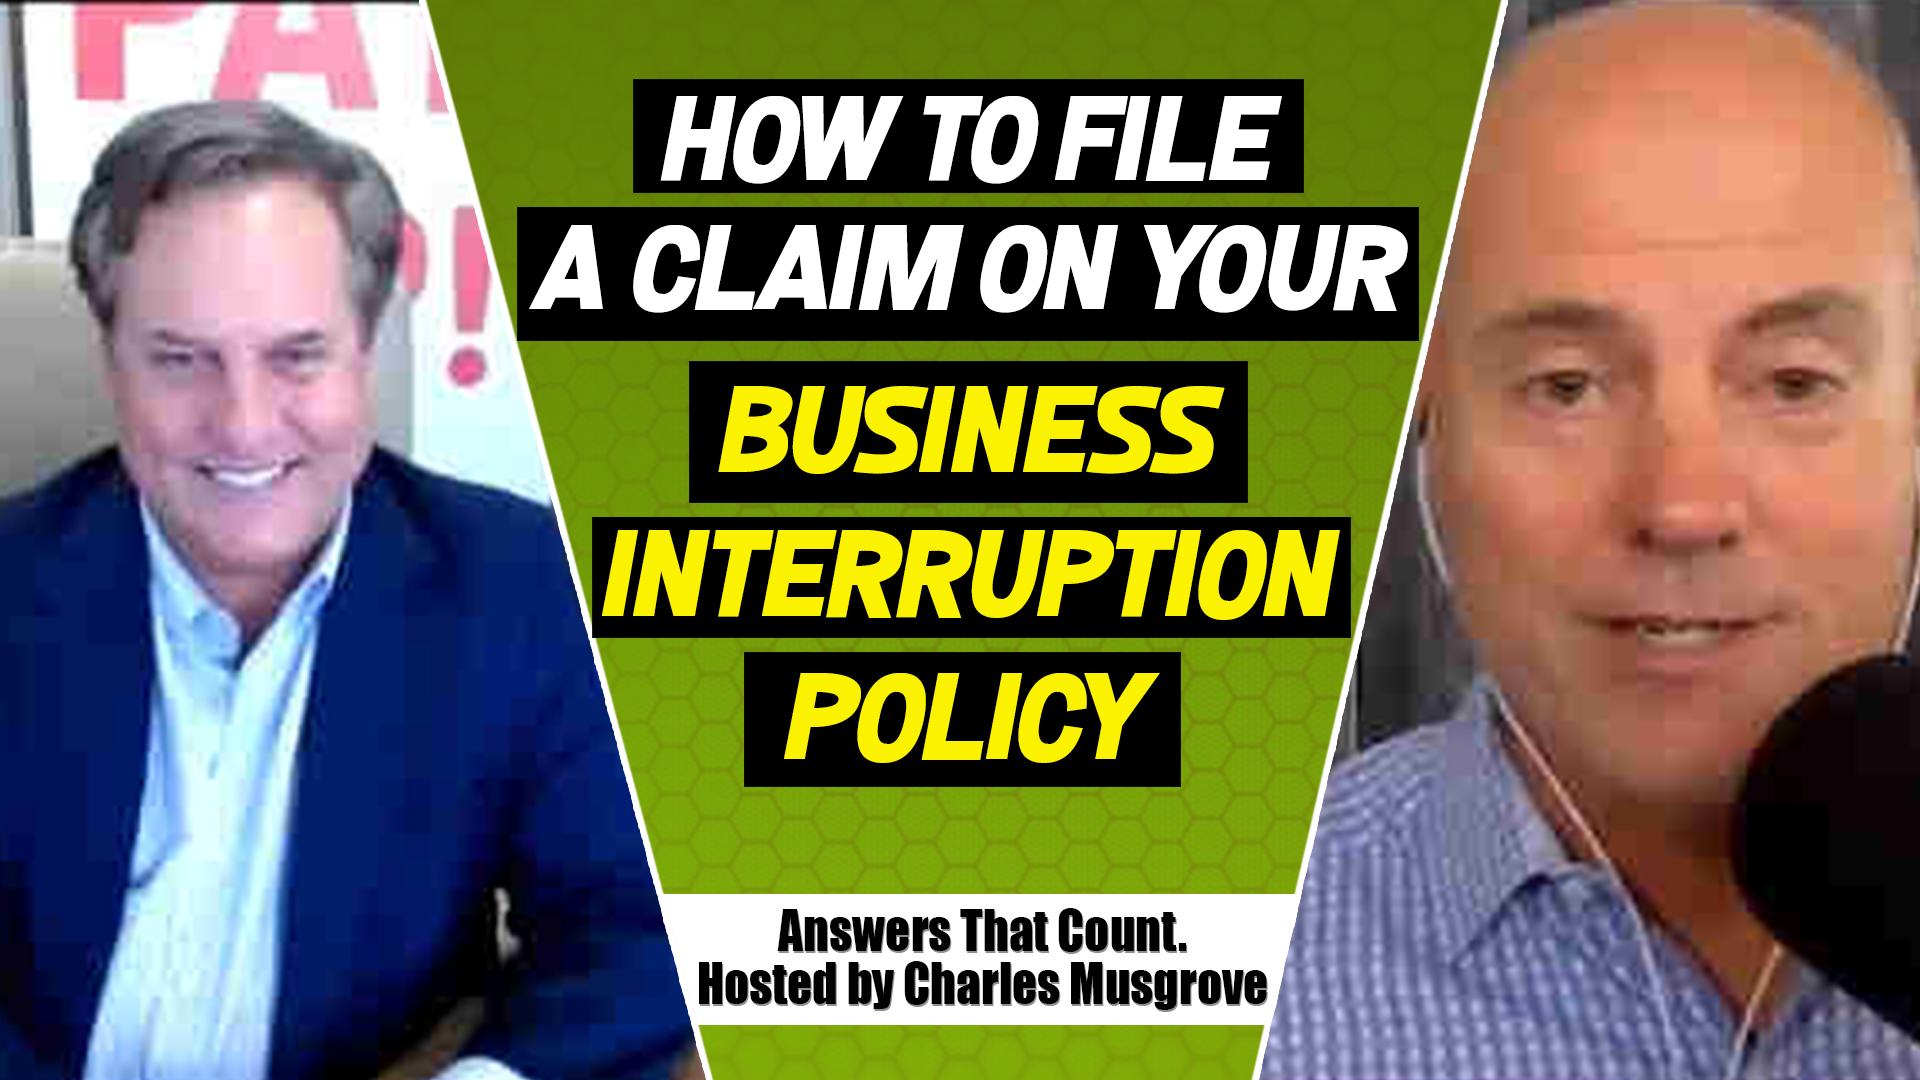 How to File A Claim on your Business Interruption Policy Even with COVID